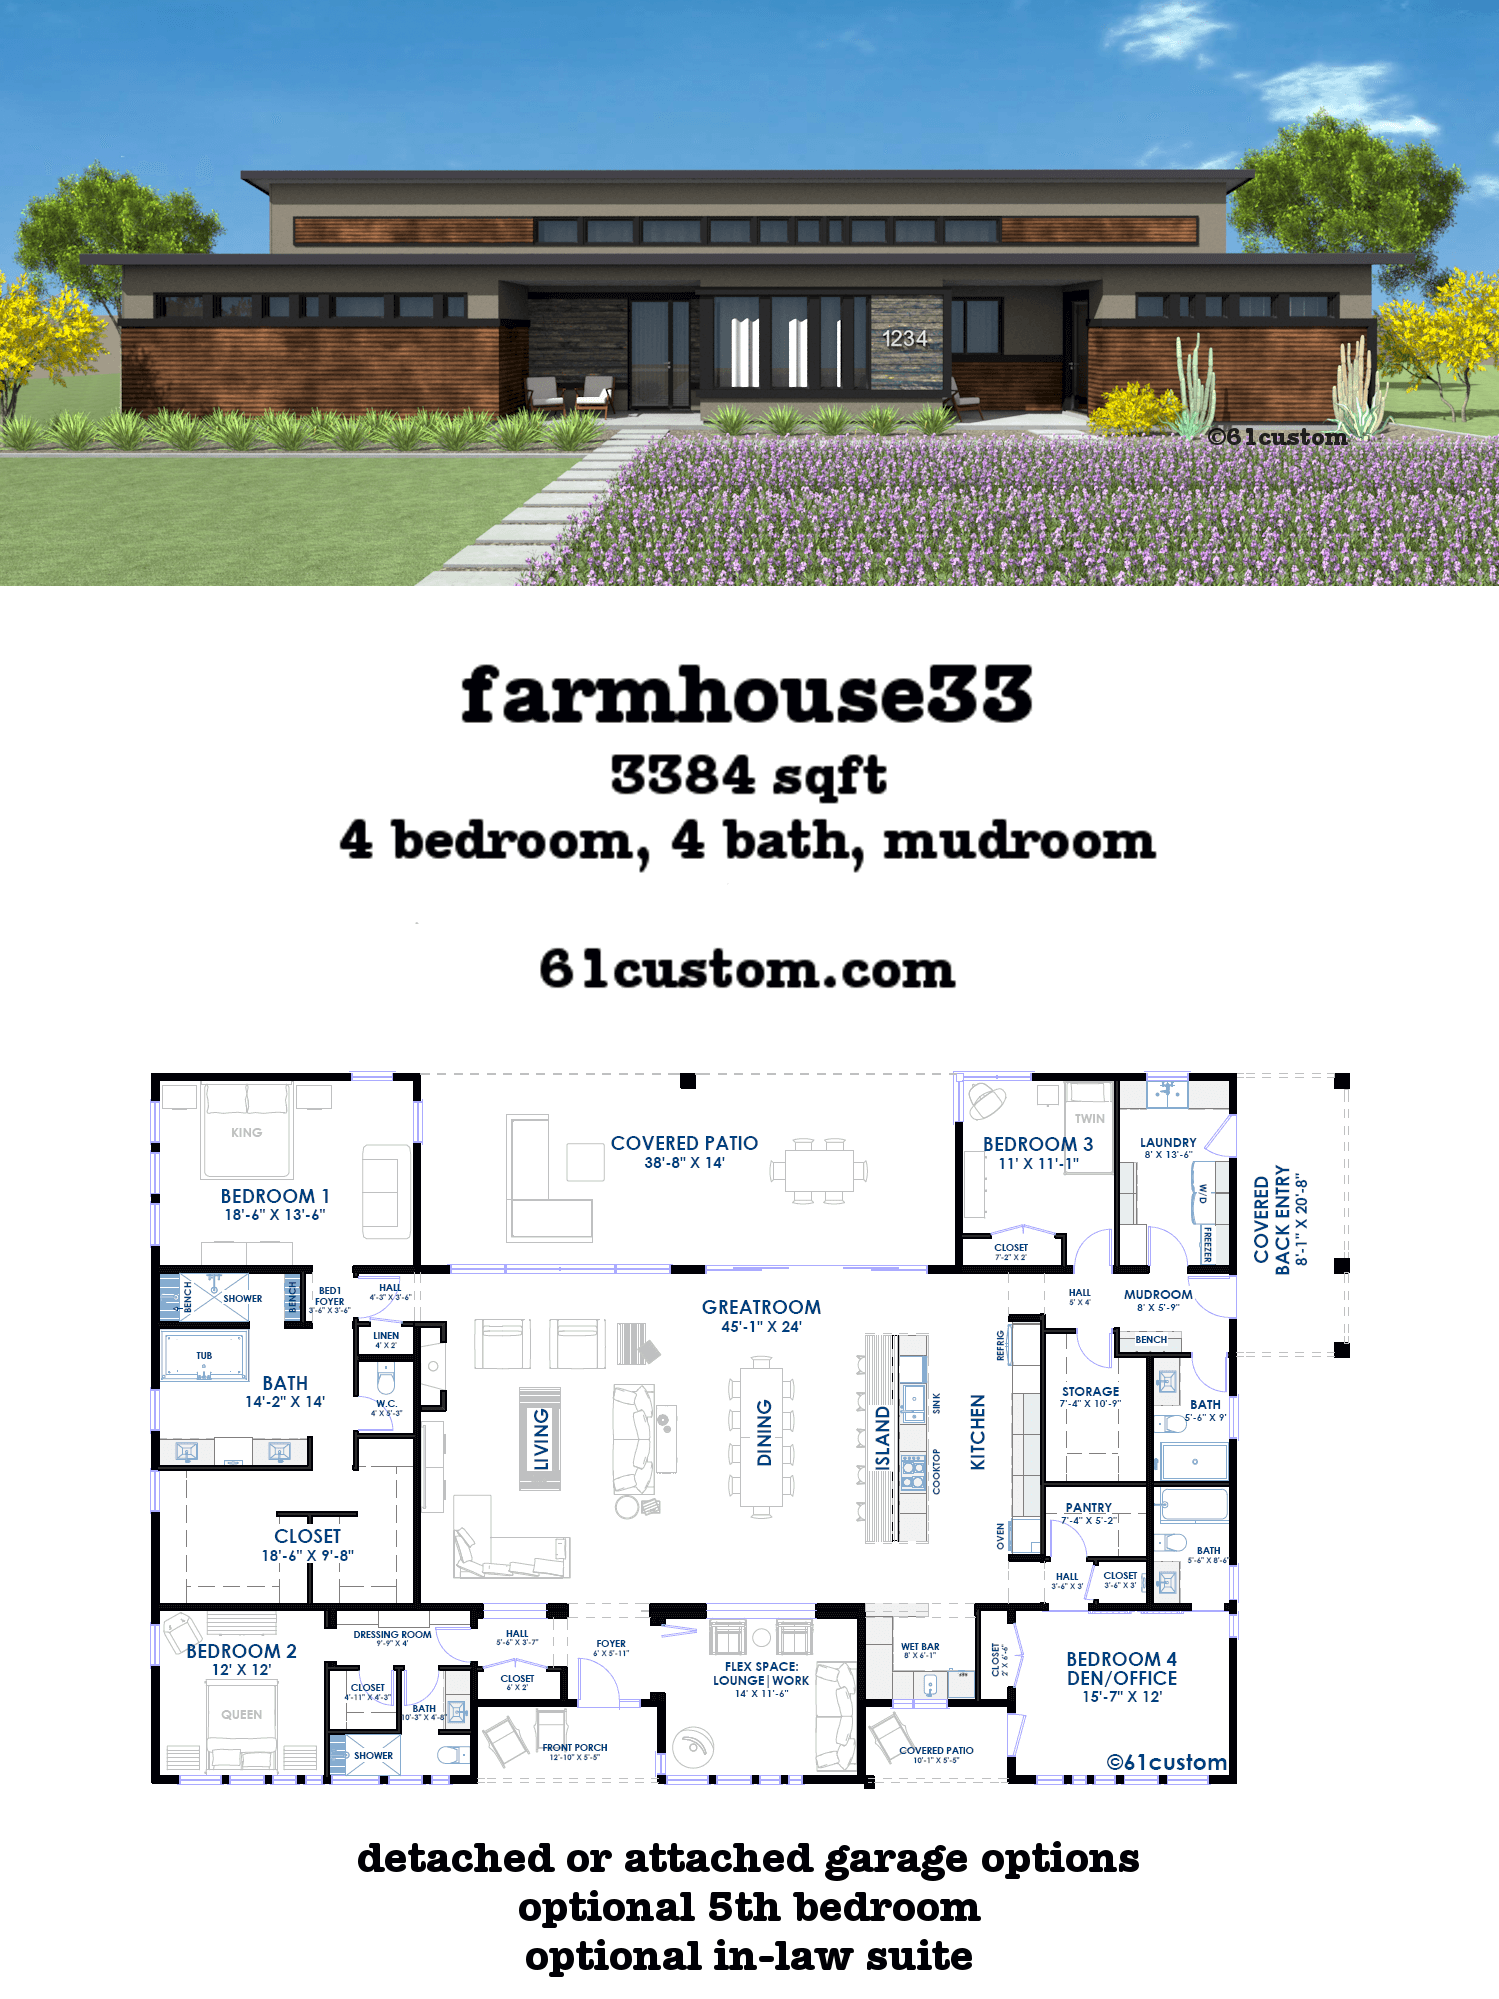 Modern Farmhouse Plan Farmhouse33 61custom Plan Doma Arhitektura Chertezhi Doma